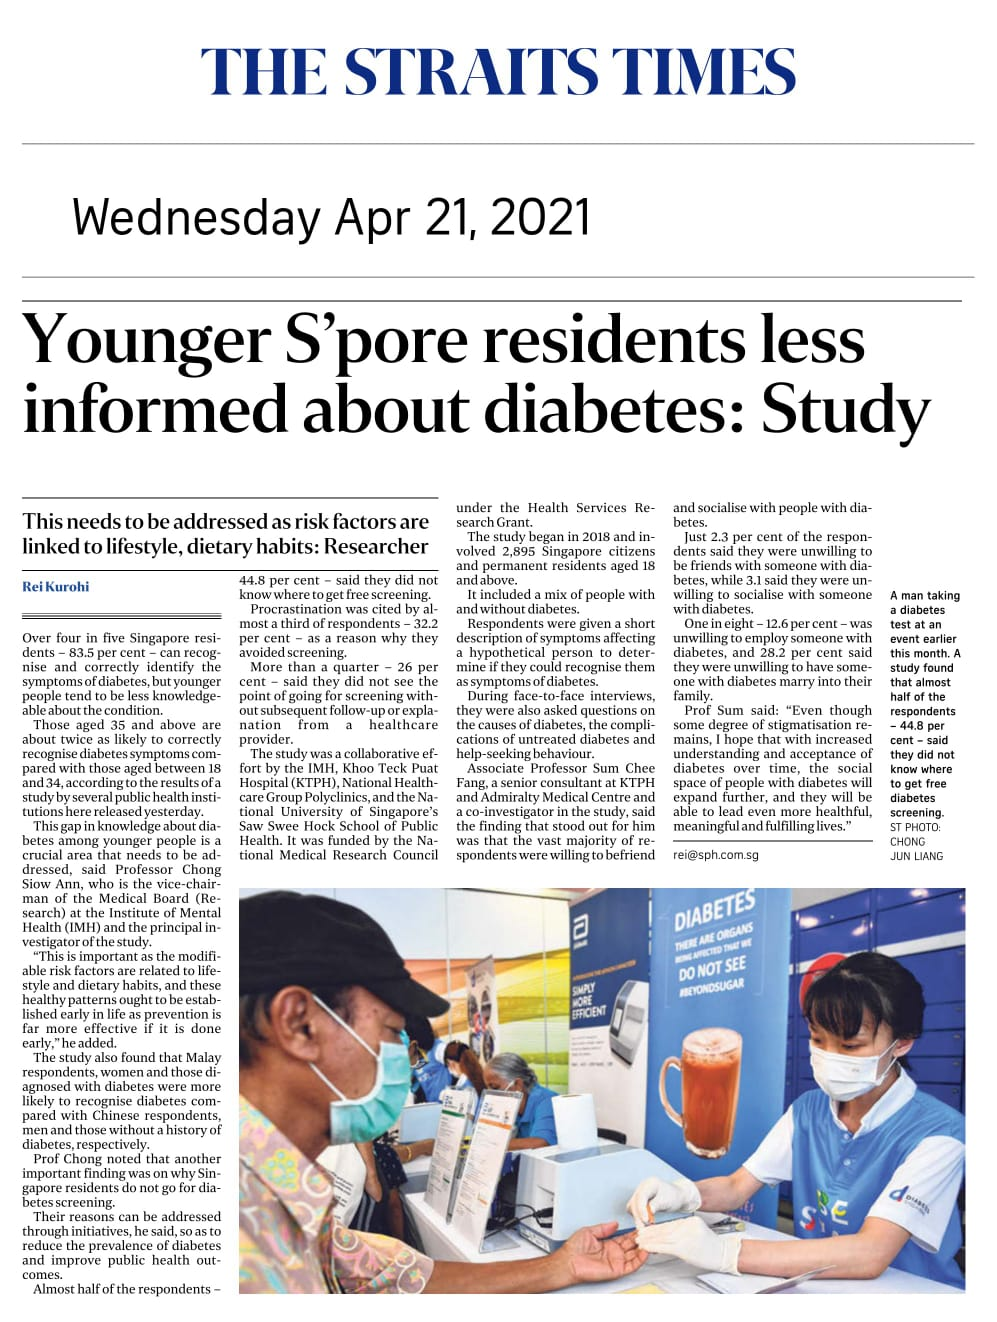 Younger S'pore residents less informed about diabetes: Study - Published in The Straits Times April 21, 2021